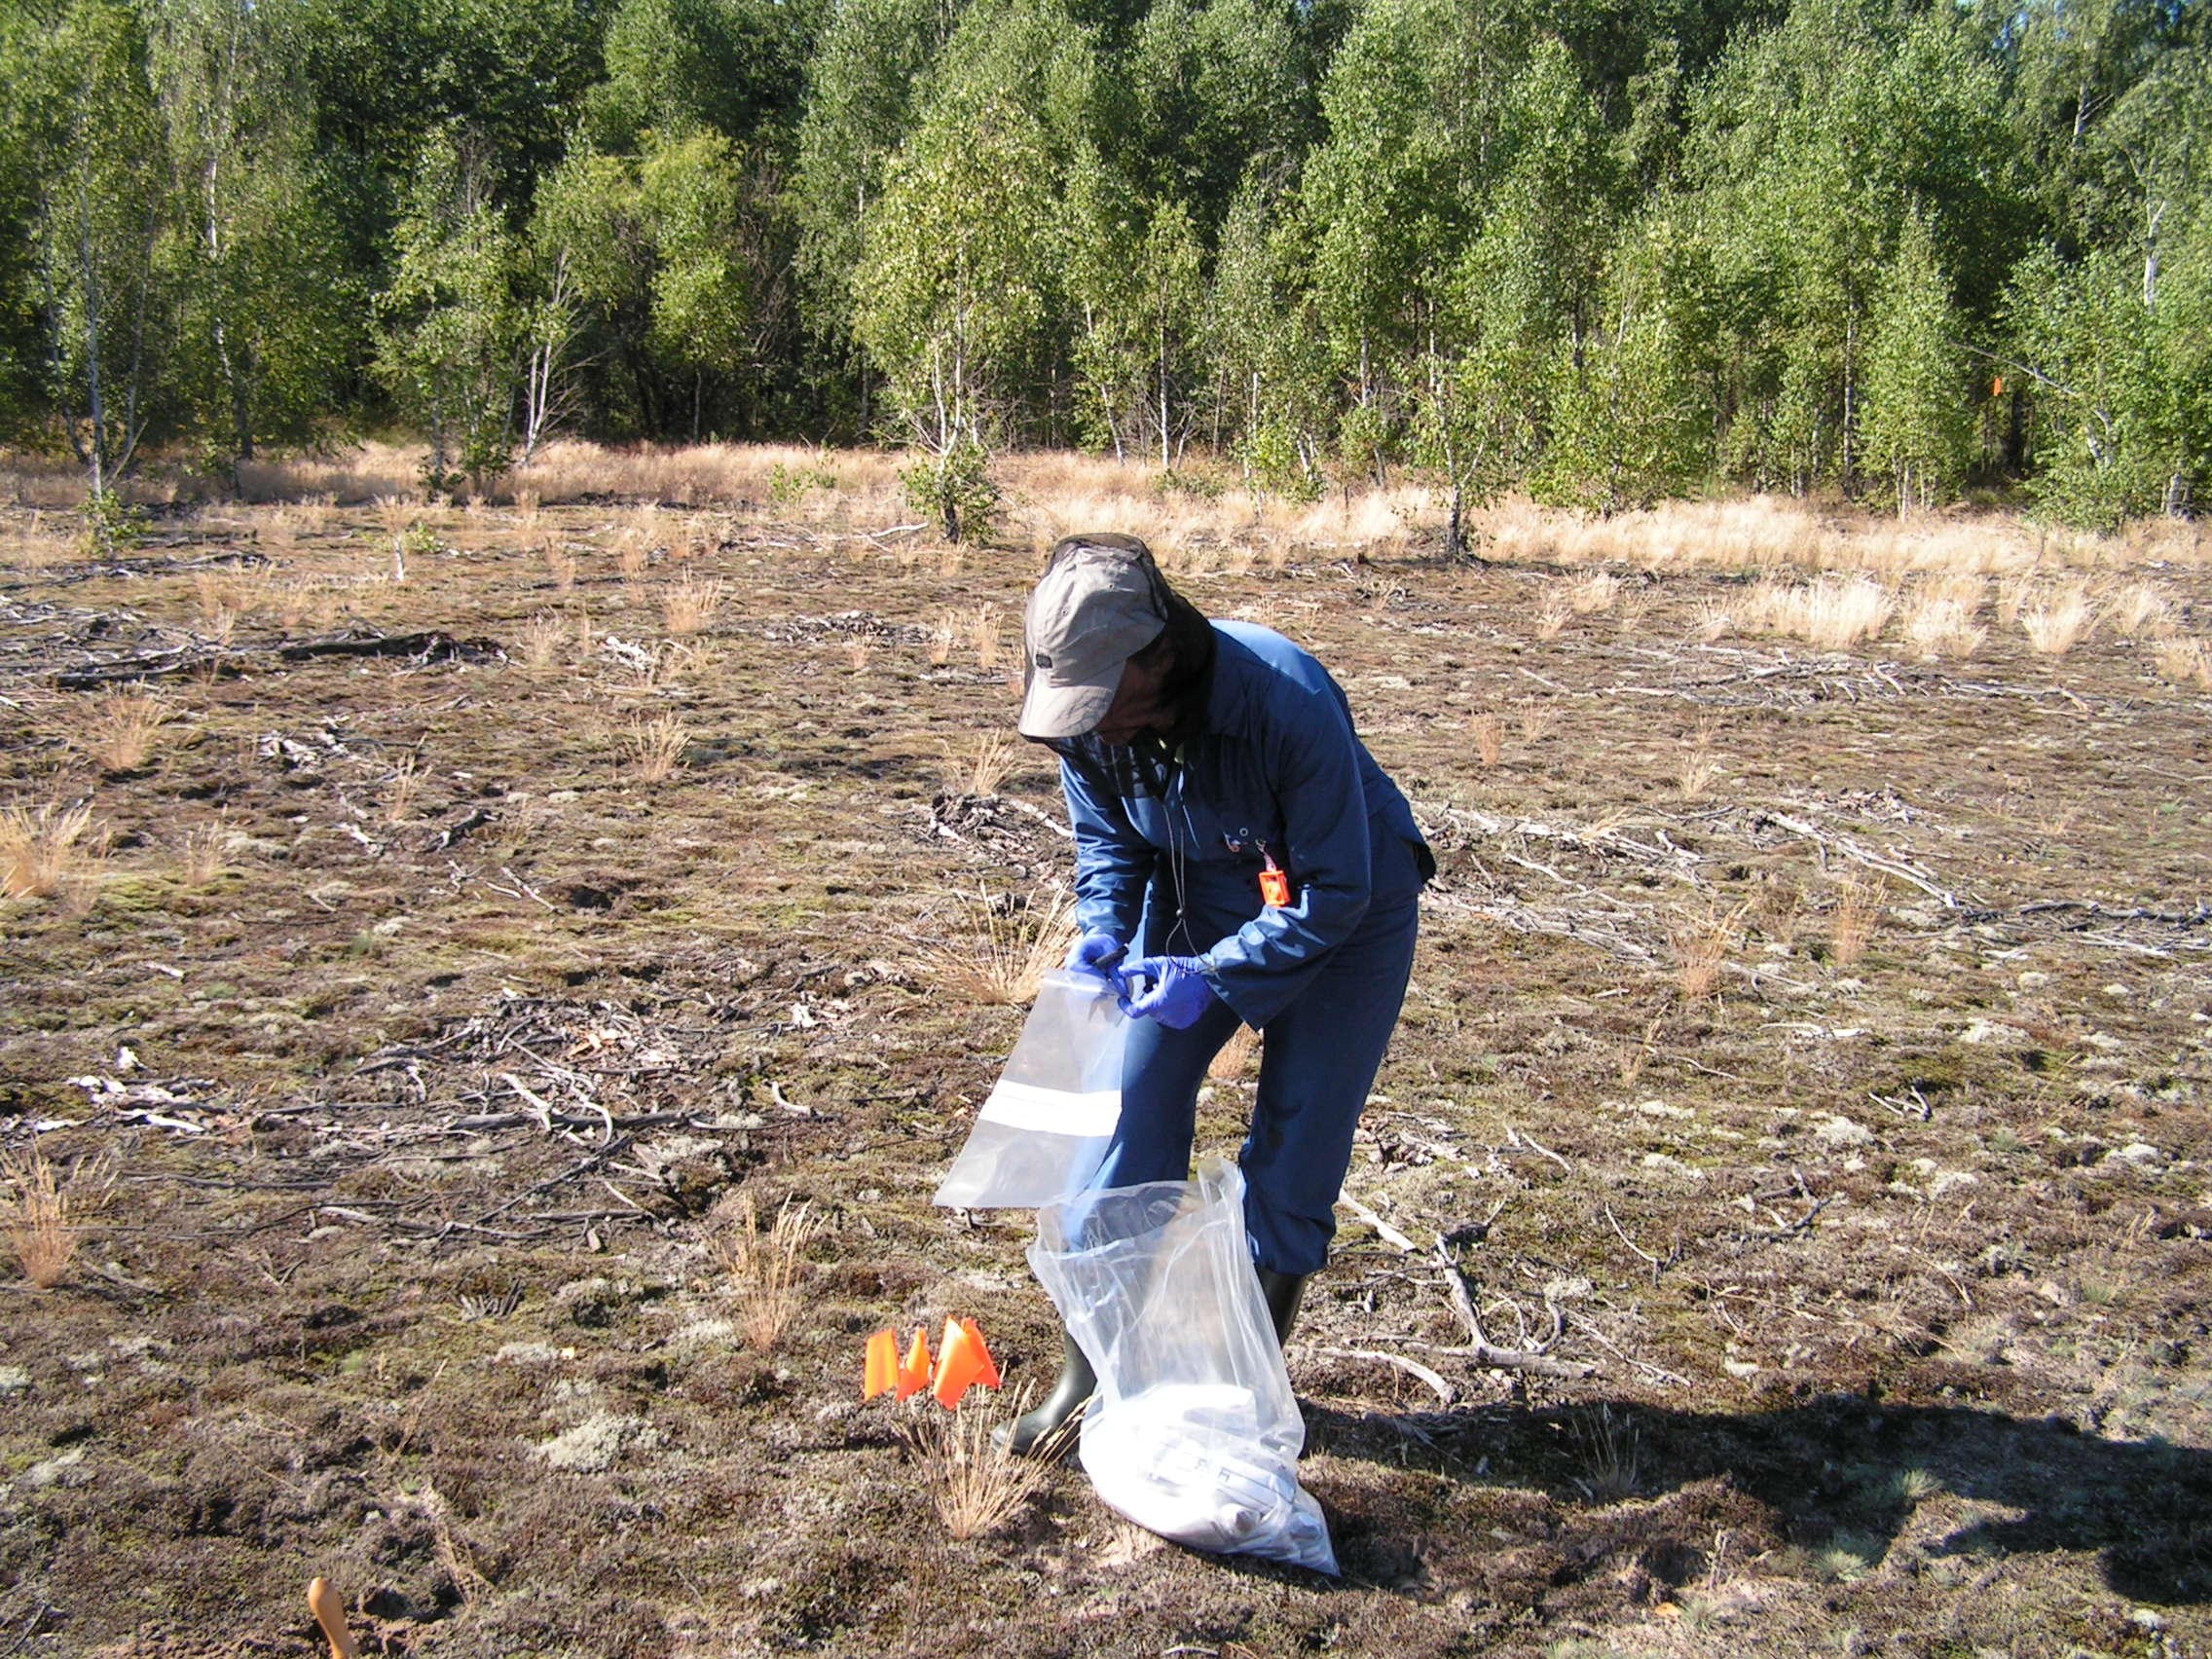 Cath Barnet (CEH Lancaster) sampling in the 'Red Forest' Chernobyl exclusion zone summer 2005